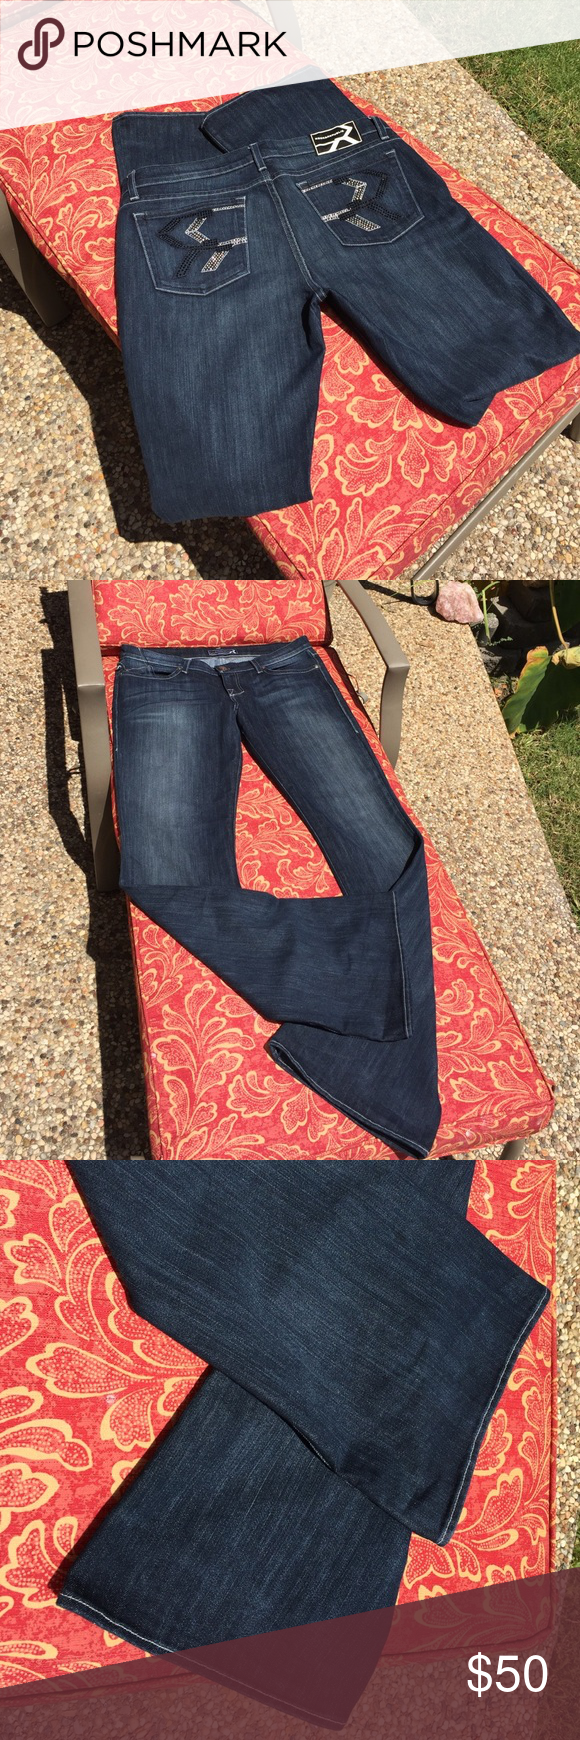 """Rock & Republic dark denim jeans Very very little wear!!! Professionally dry cleaned always. No stones missing. These jeans are in perfect condition. 36"""" in length! These jeans are for ladies with long legs!!! Width of boot flare is 10"""". Overall length from back waist to hem 47"""". LOVE these jeans!!! Rock & Republic Jeans Boot Cut"""